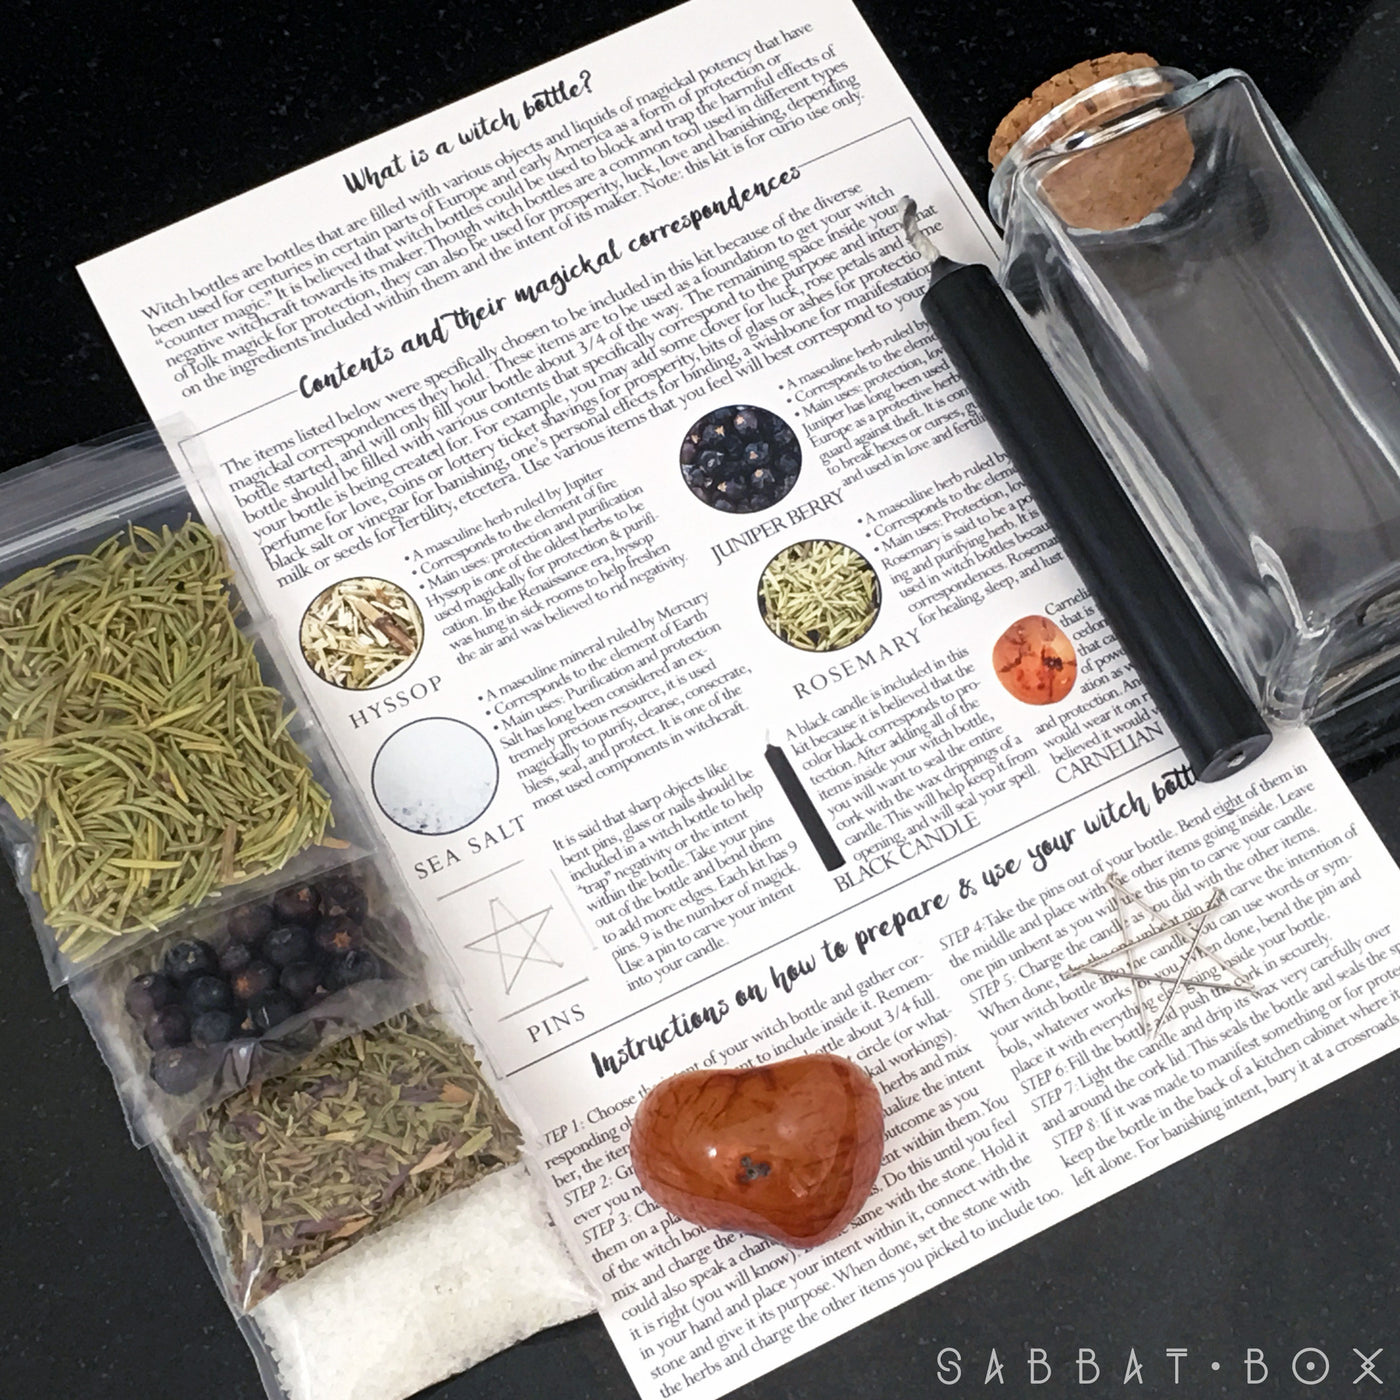 Witch Bottle Kit - With Correspondences and Instructions